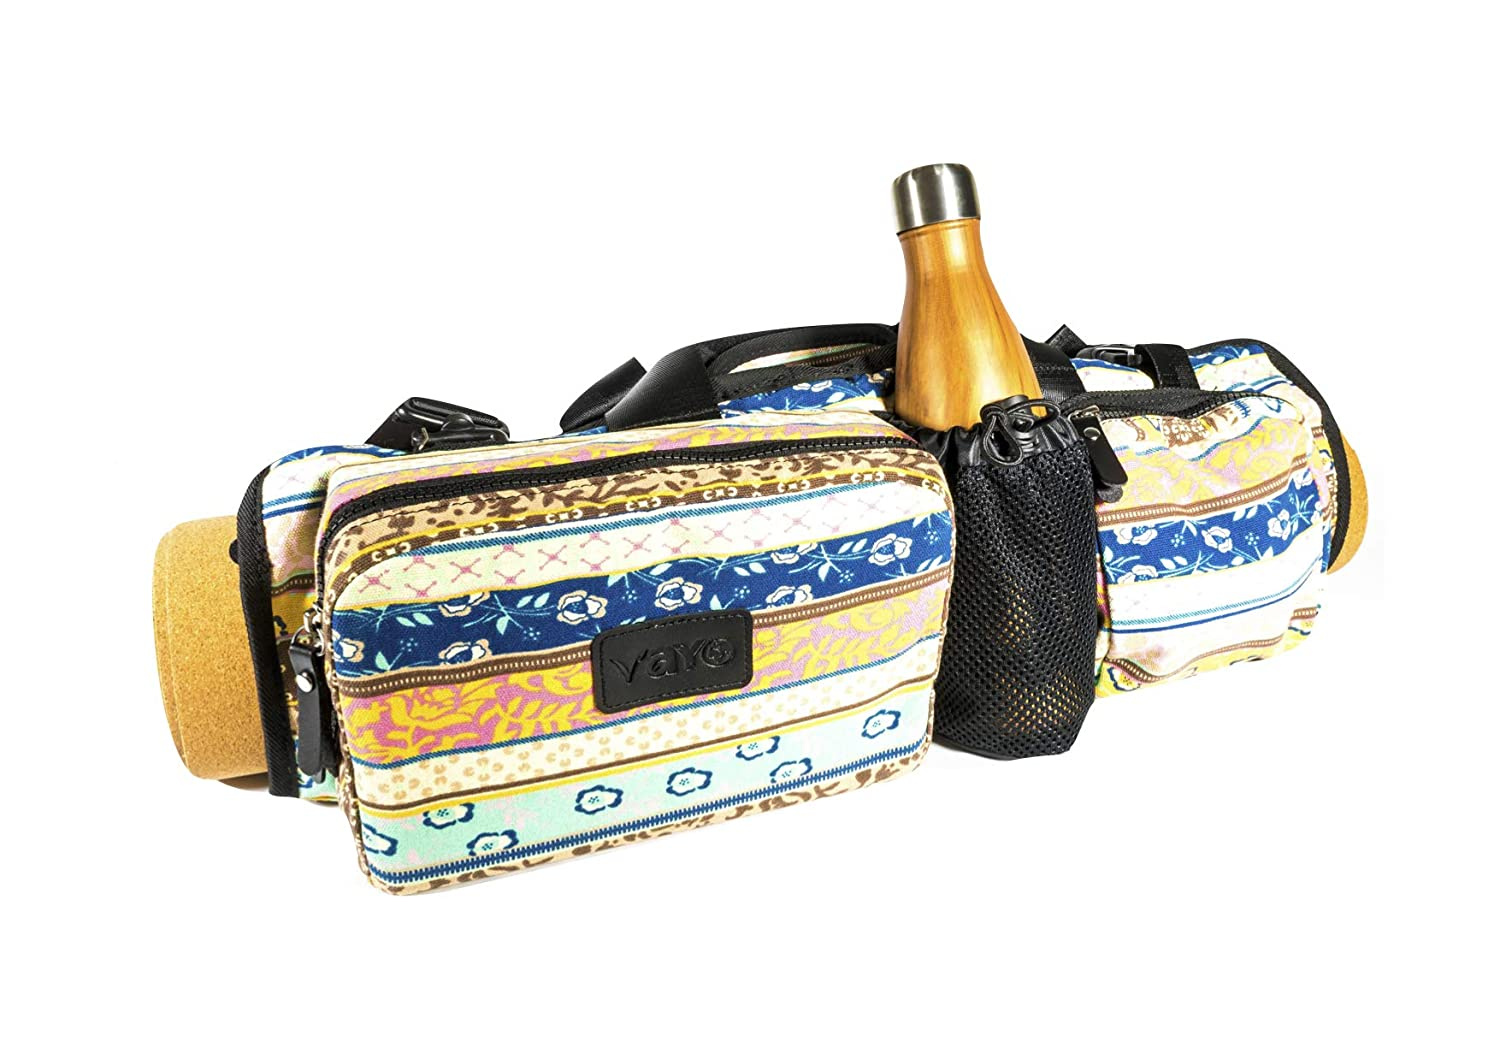 VaYo Concept Colourful Yoga KIT Bag